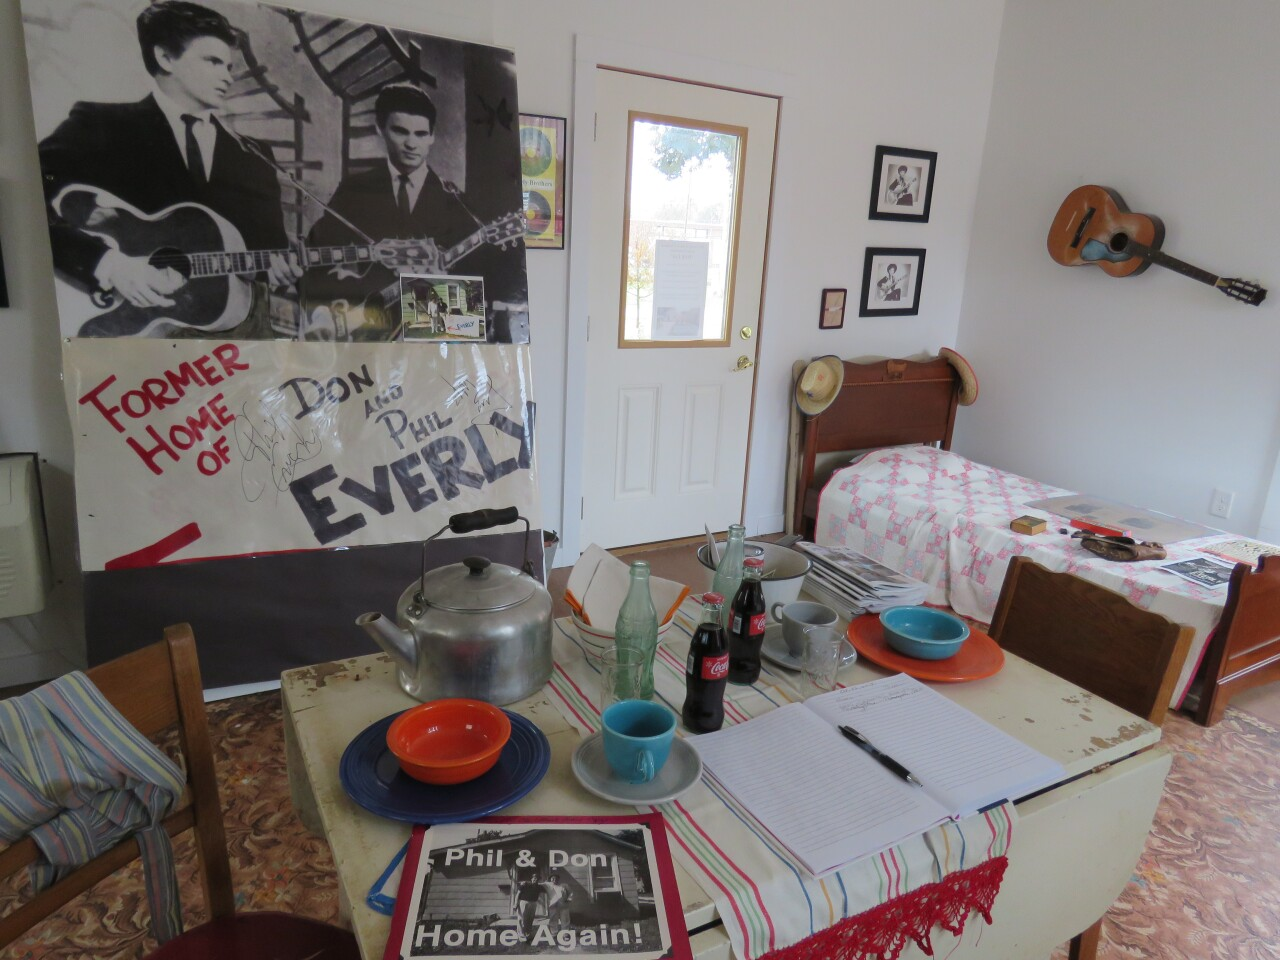 The Everly Brothers home